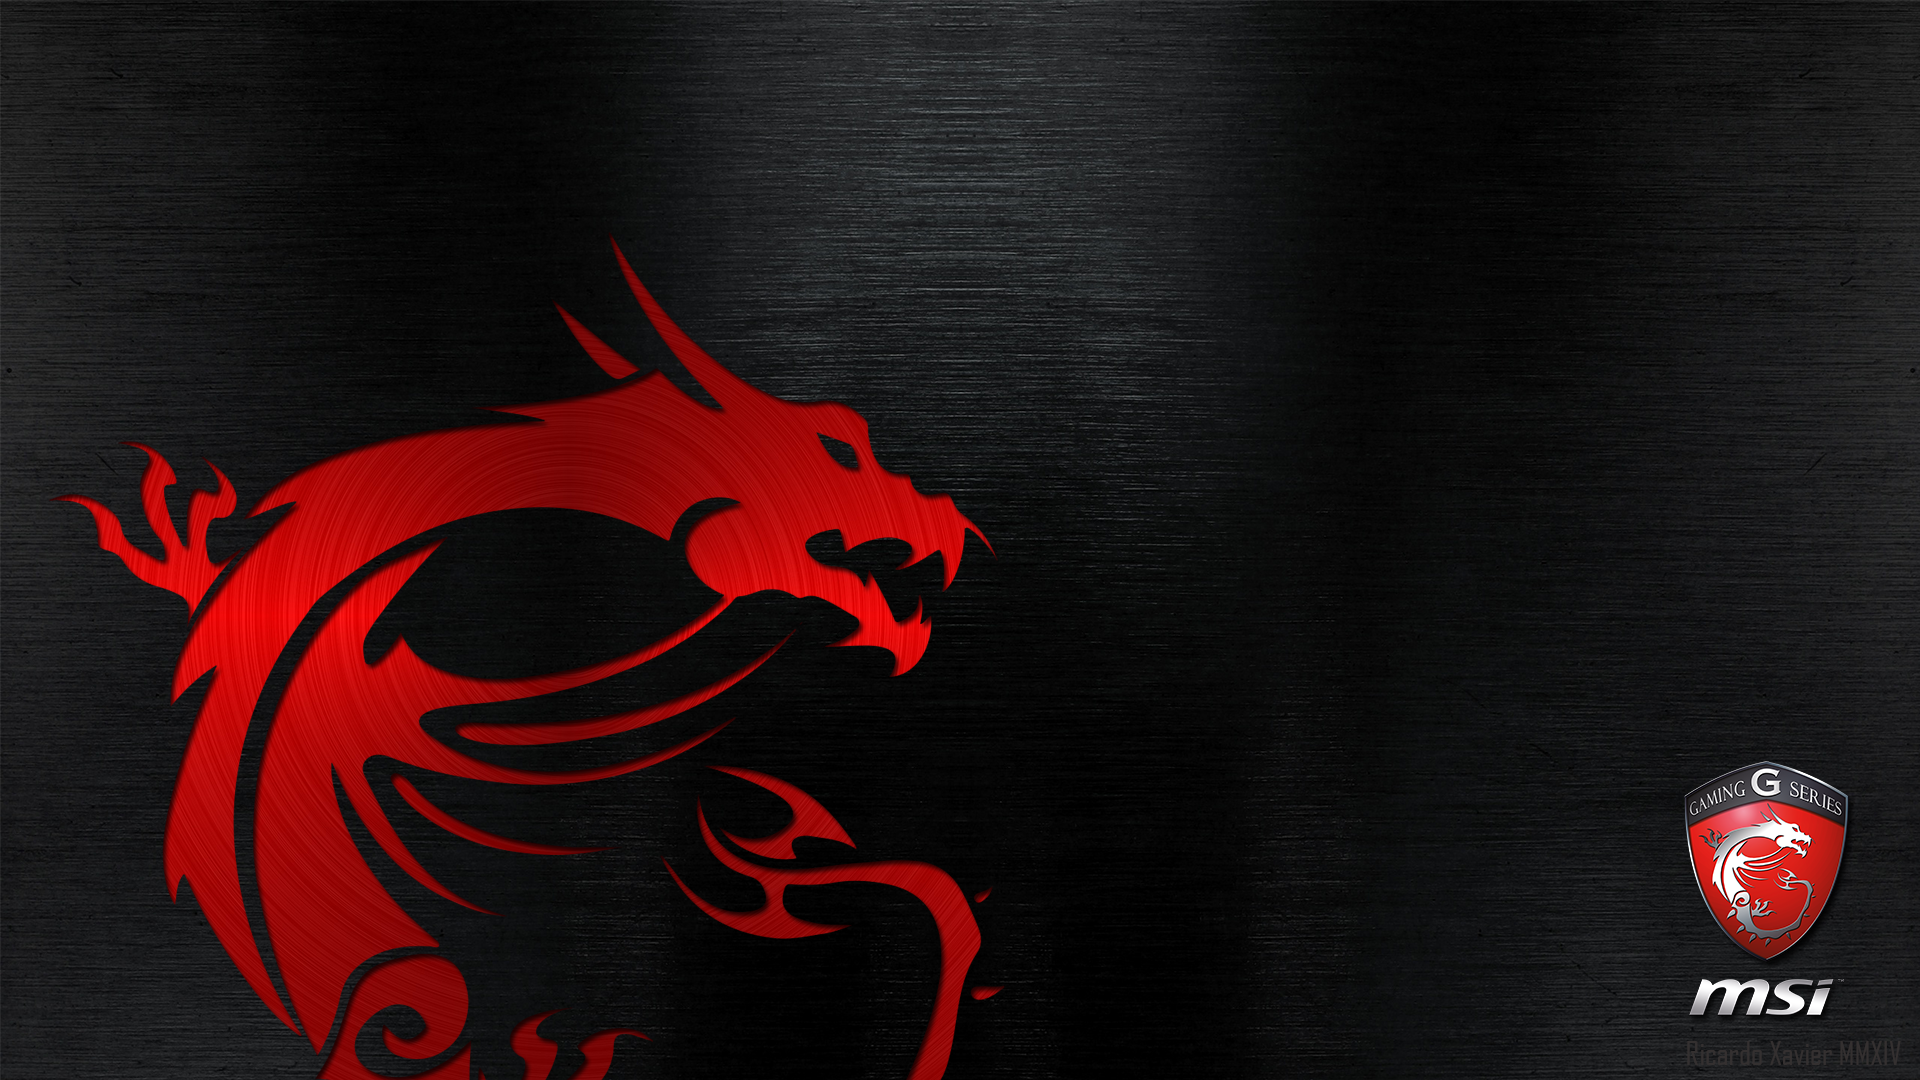 10 New Msi Gaming Series Wallpaper Full Hd 1920 1080 For: Arrière-Plans - Wallpaper Abyss